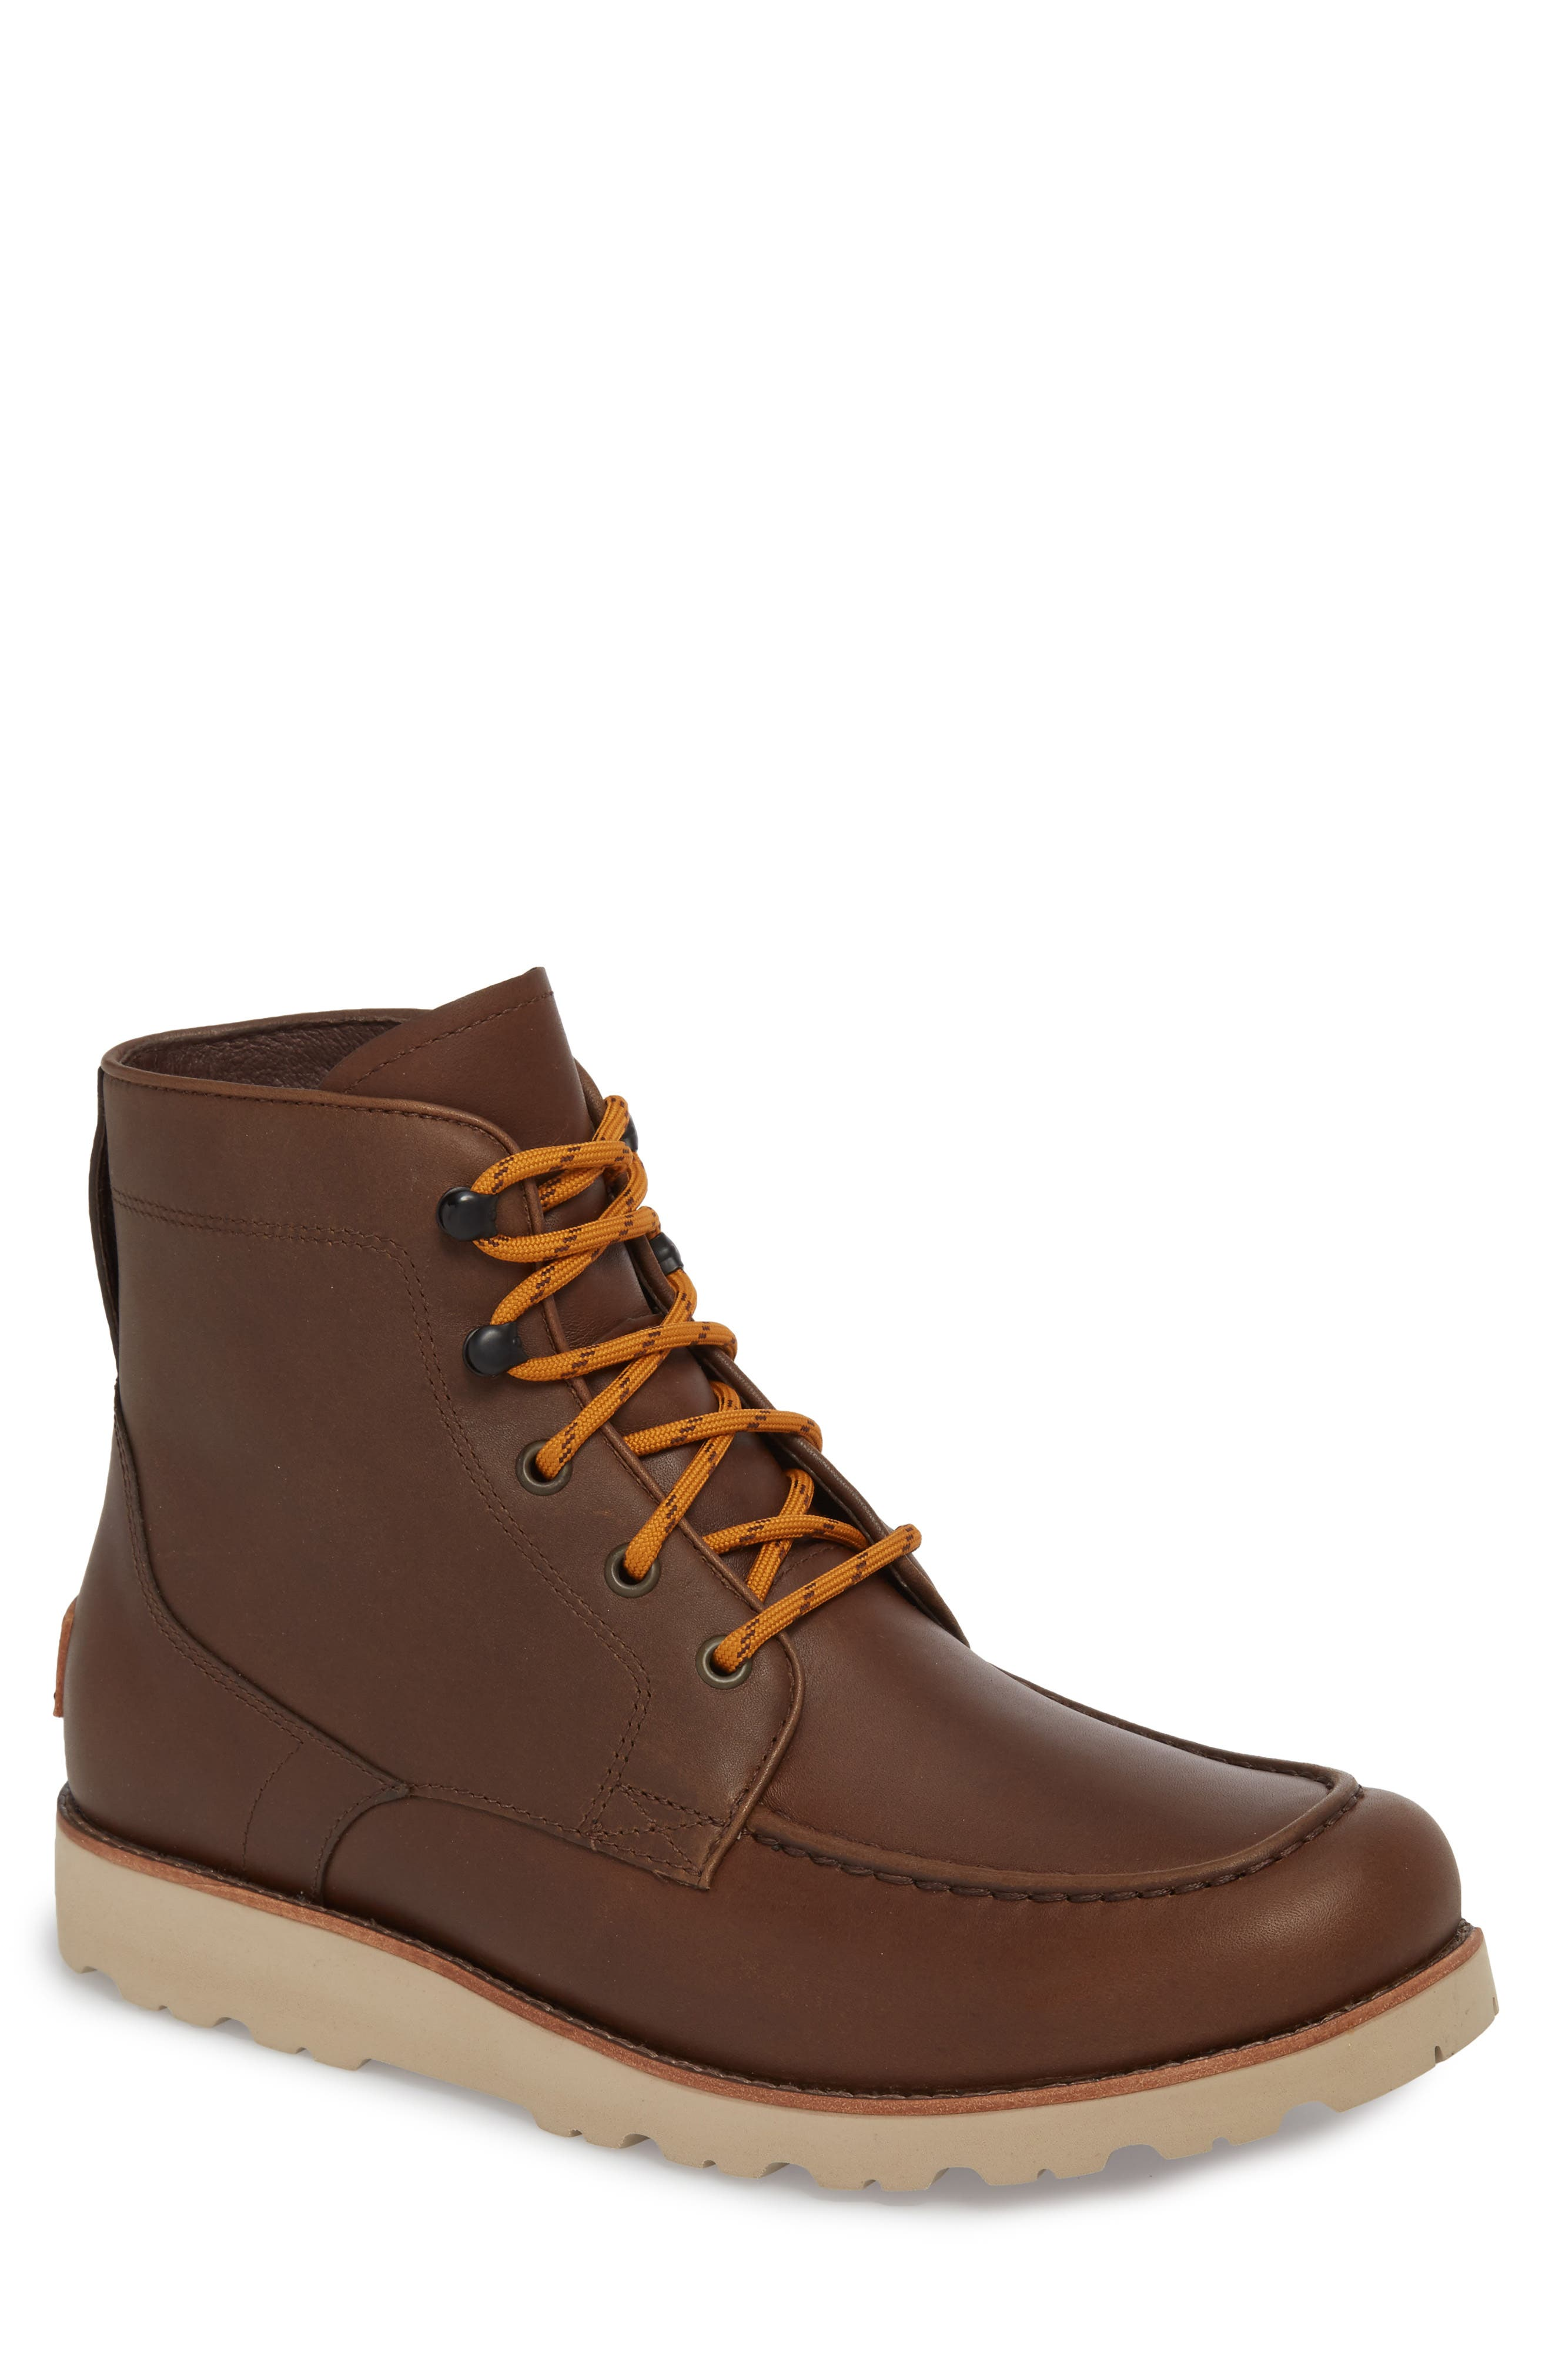 Agnar Moc Toe Boot,                         Main,                         color, Grizzly